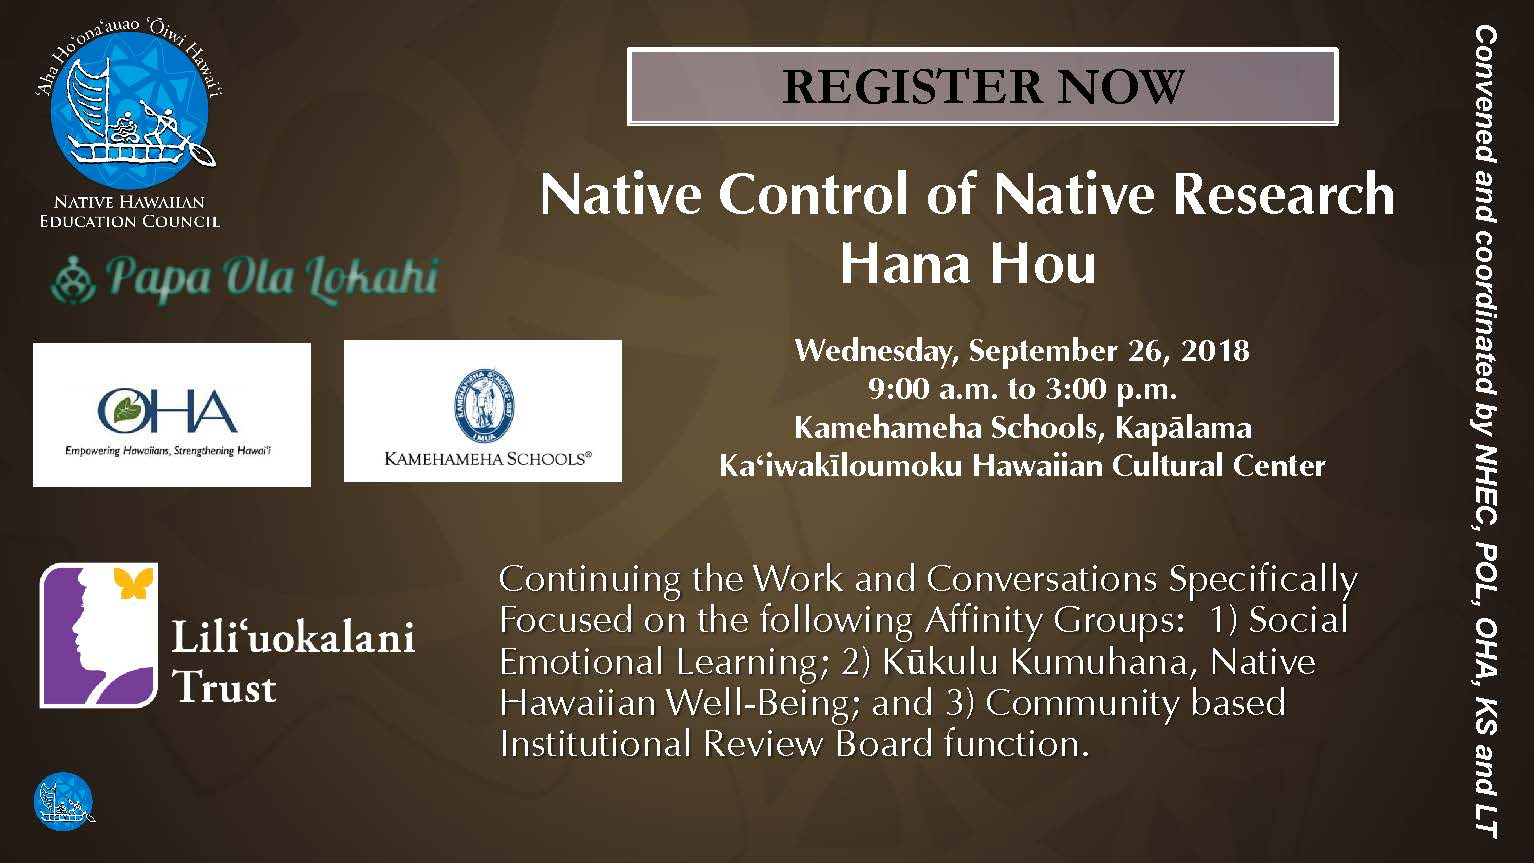 180926 REGISTER NOW Native Control of Native Research Hana Hou 003